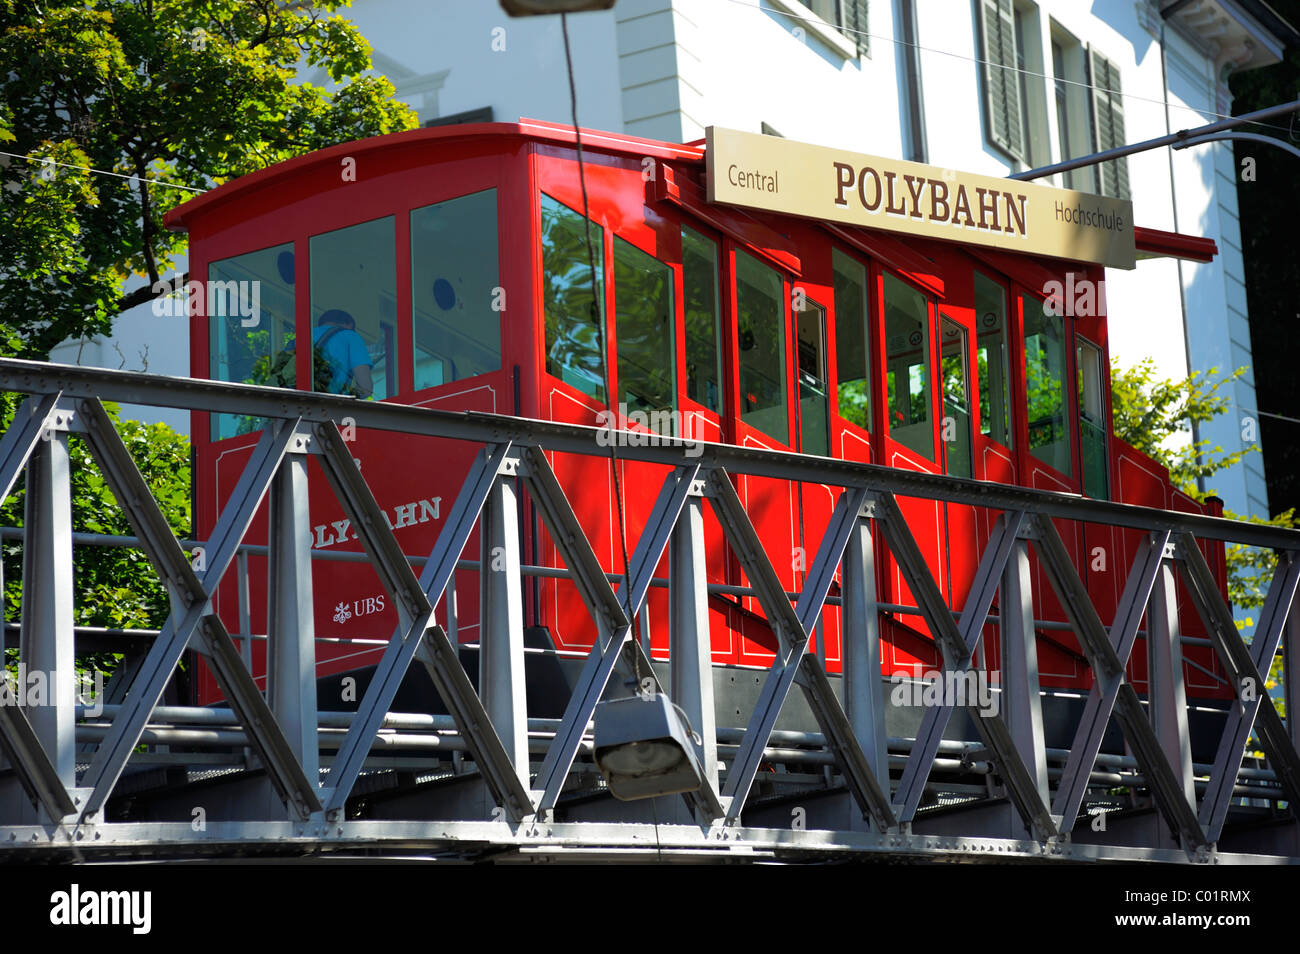 The Polybahn, a funicular railway, Zurich, Switzerland, Europe Stock Photo